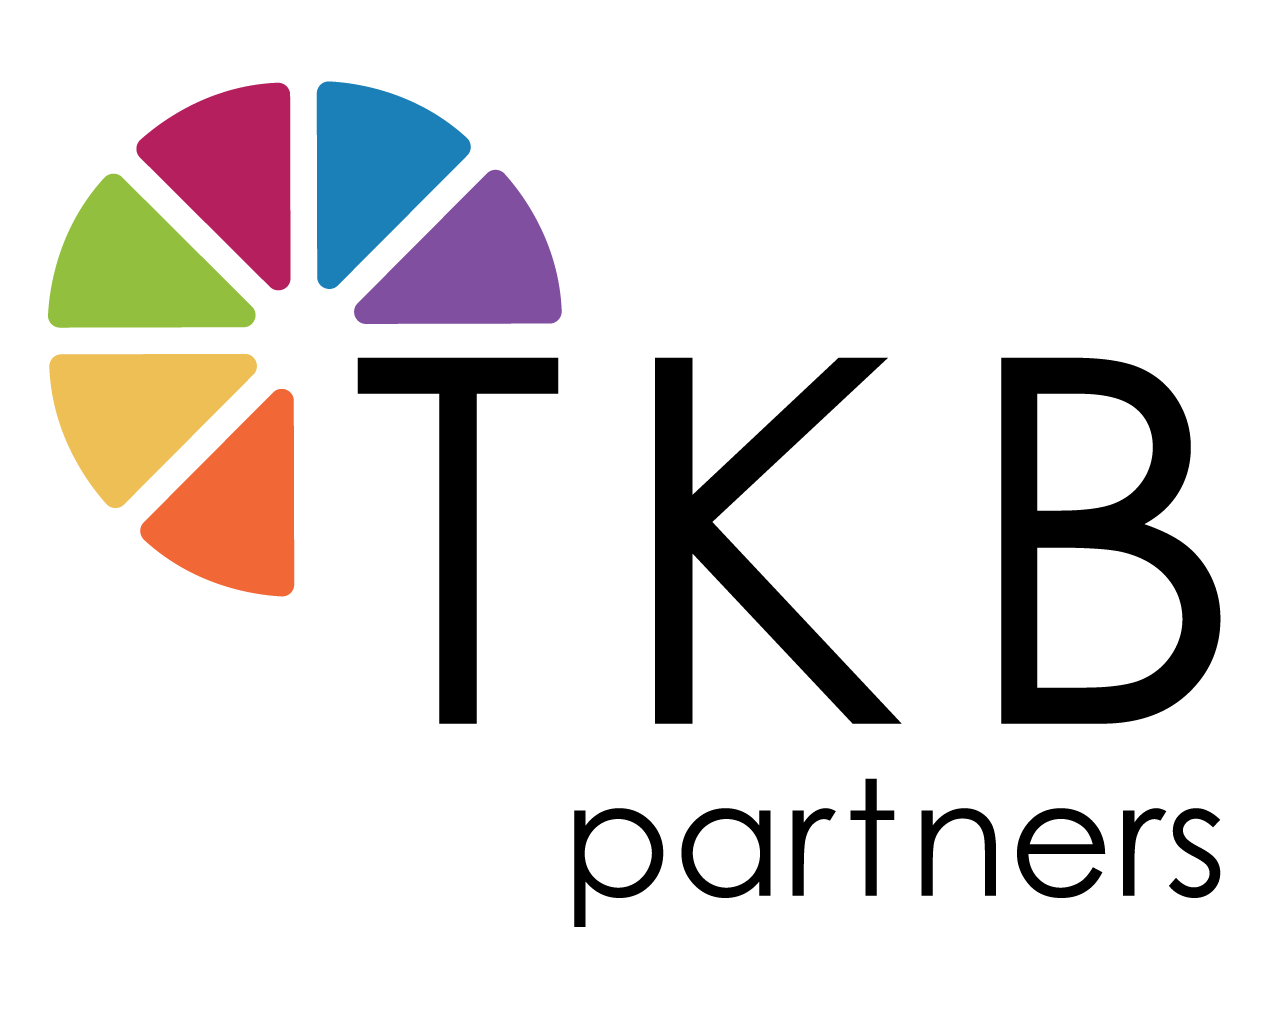 tkb-partners-wholesale-02.png